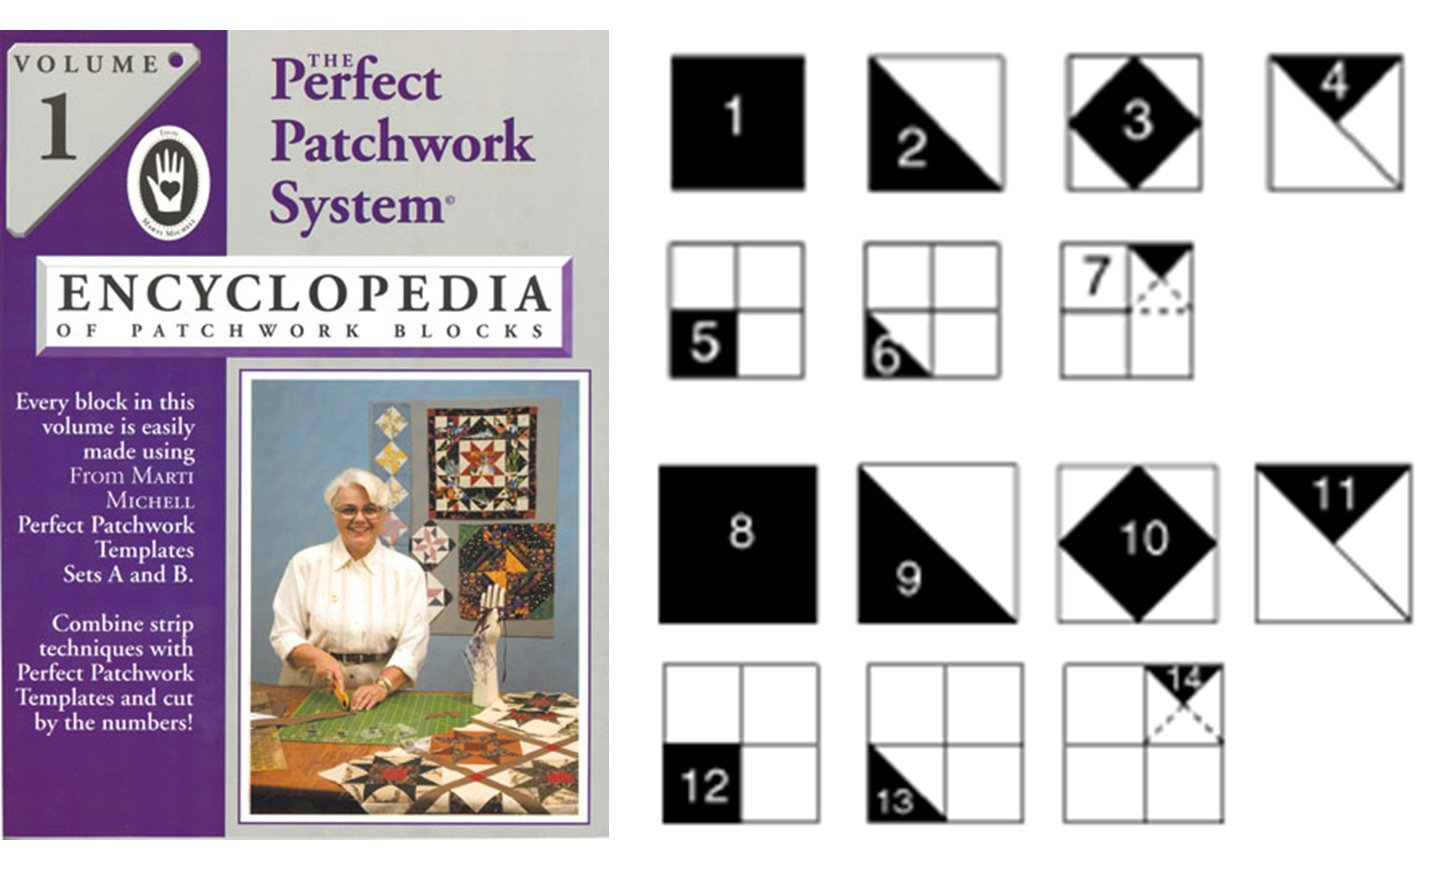 Marti Michell Quilting Template Set for Perfect Patchwork Quilt Blocks, 3 Items: Volume 1 Quilting Book, Template Sets A and B by Marti Michell